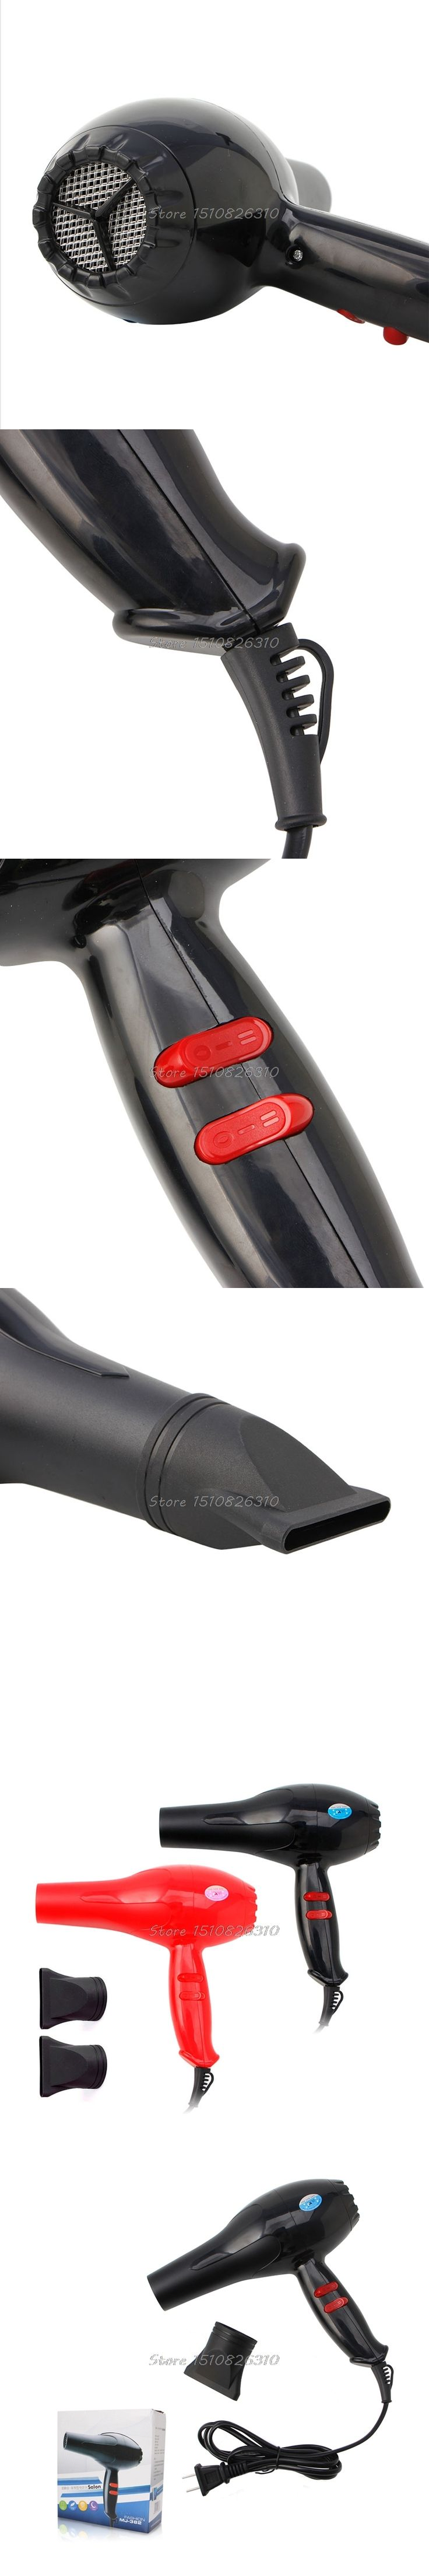 Black/Red 1Set Professional Hair Drier 1600W Hair Blower Dryer Bolw Heat and Cold Wind #E207Y# Hot Sale